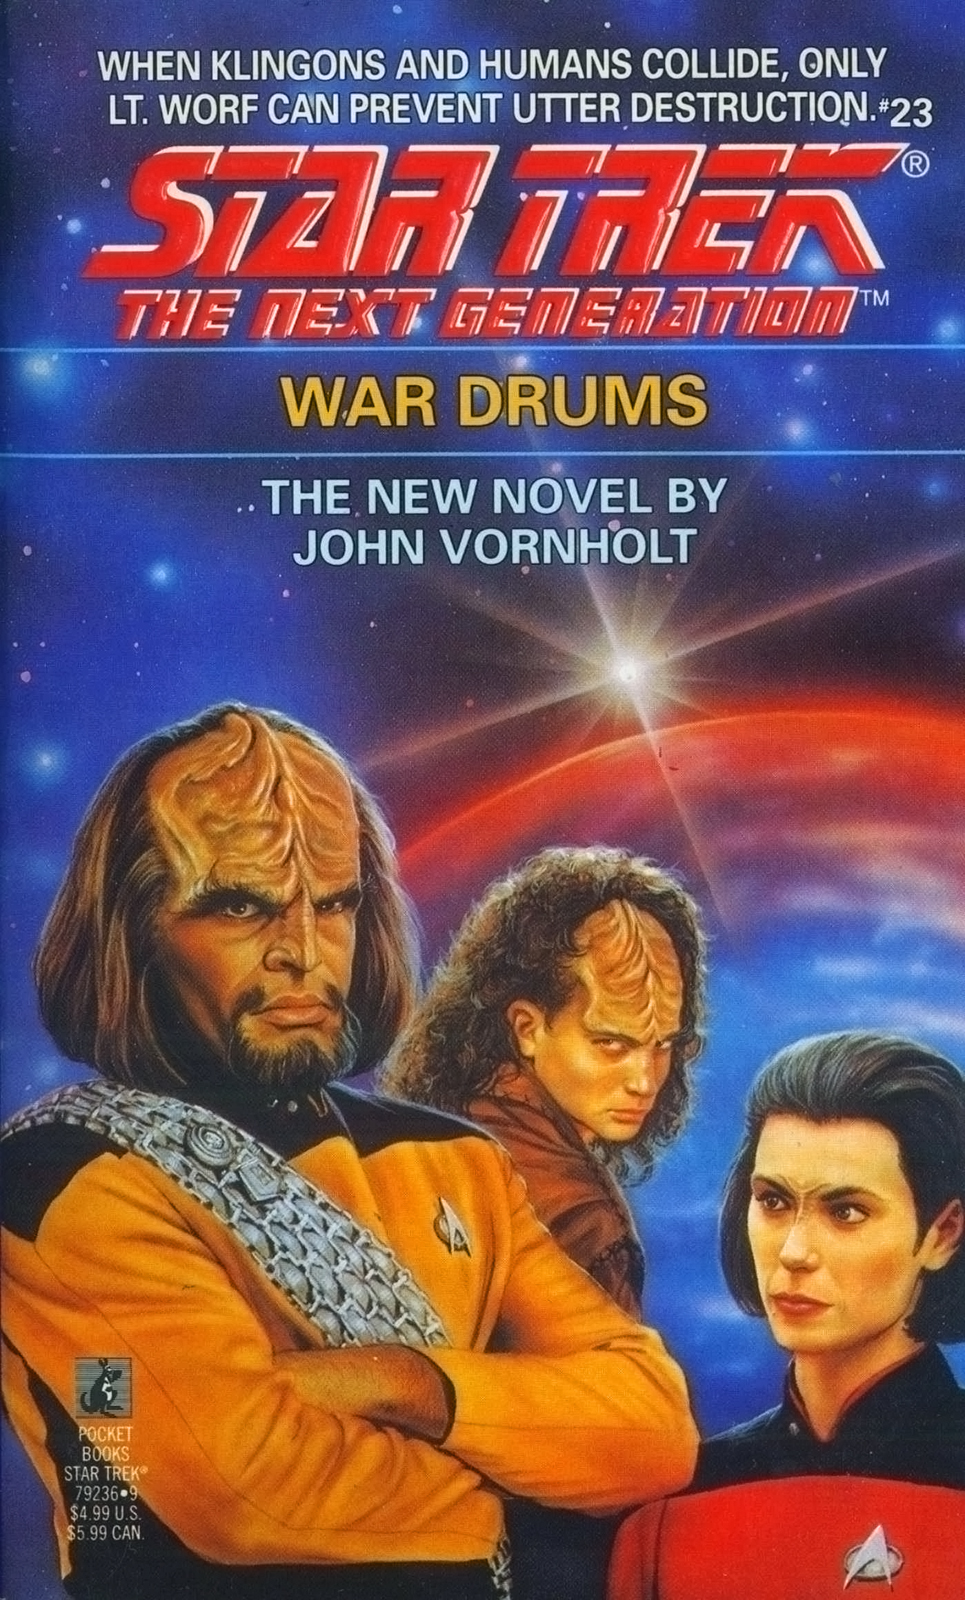 File:Wardrums cover.jpg